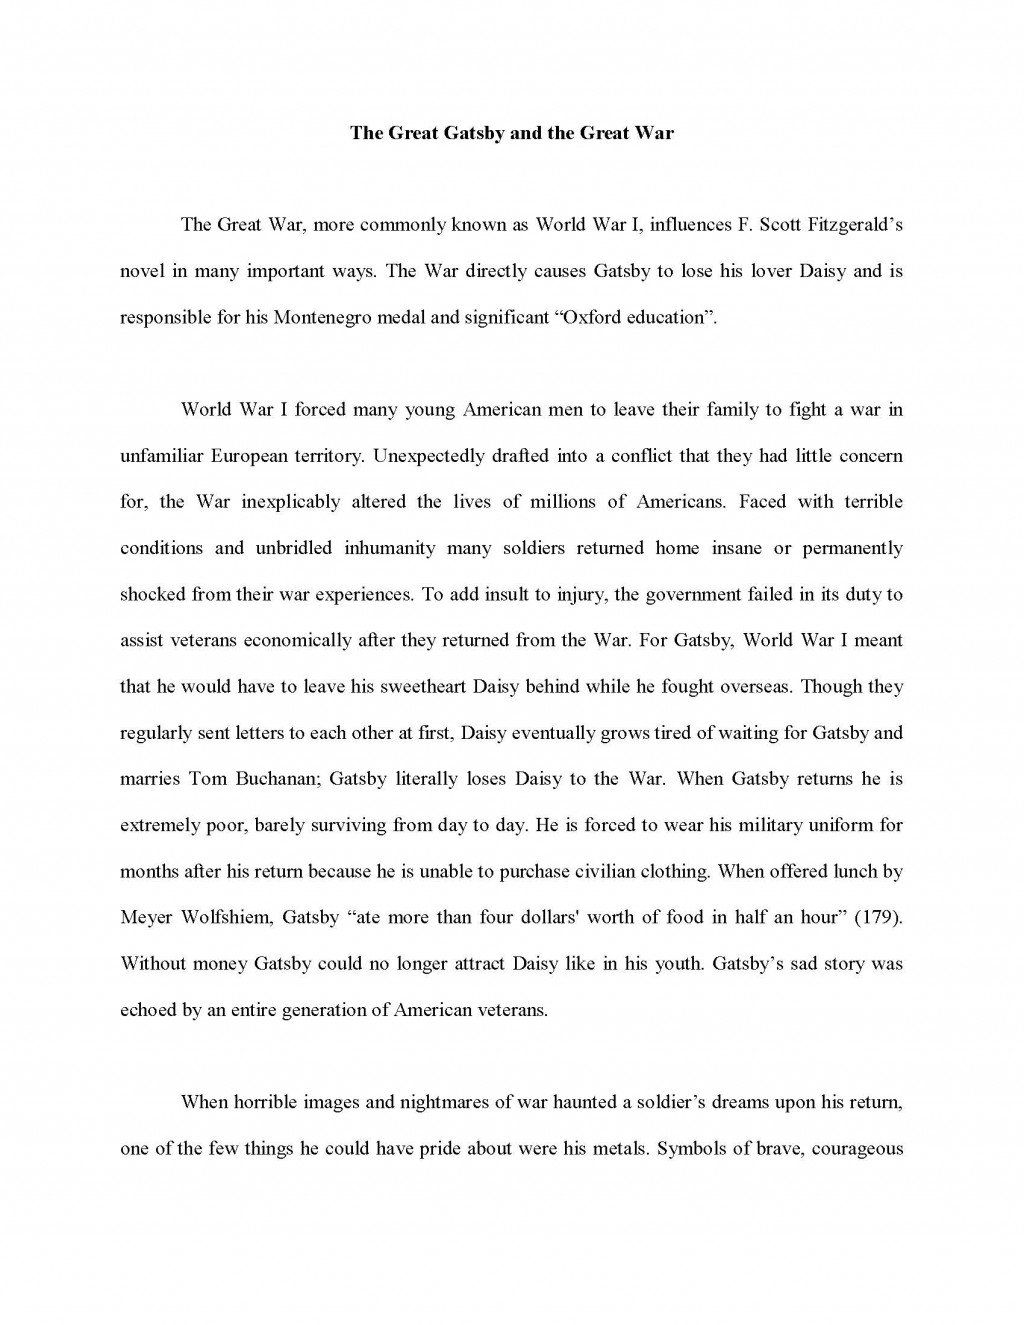 016 Informative Essay Sample Writing Satirical Top A Examples Of Satire Topics To Write On Essays Large